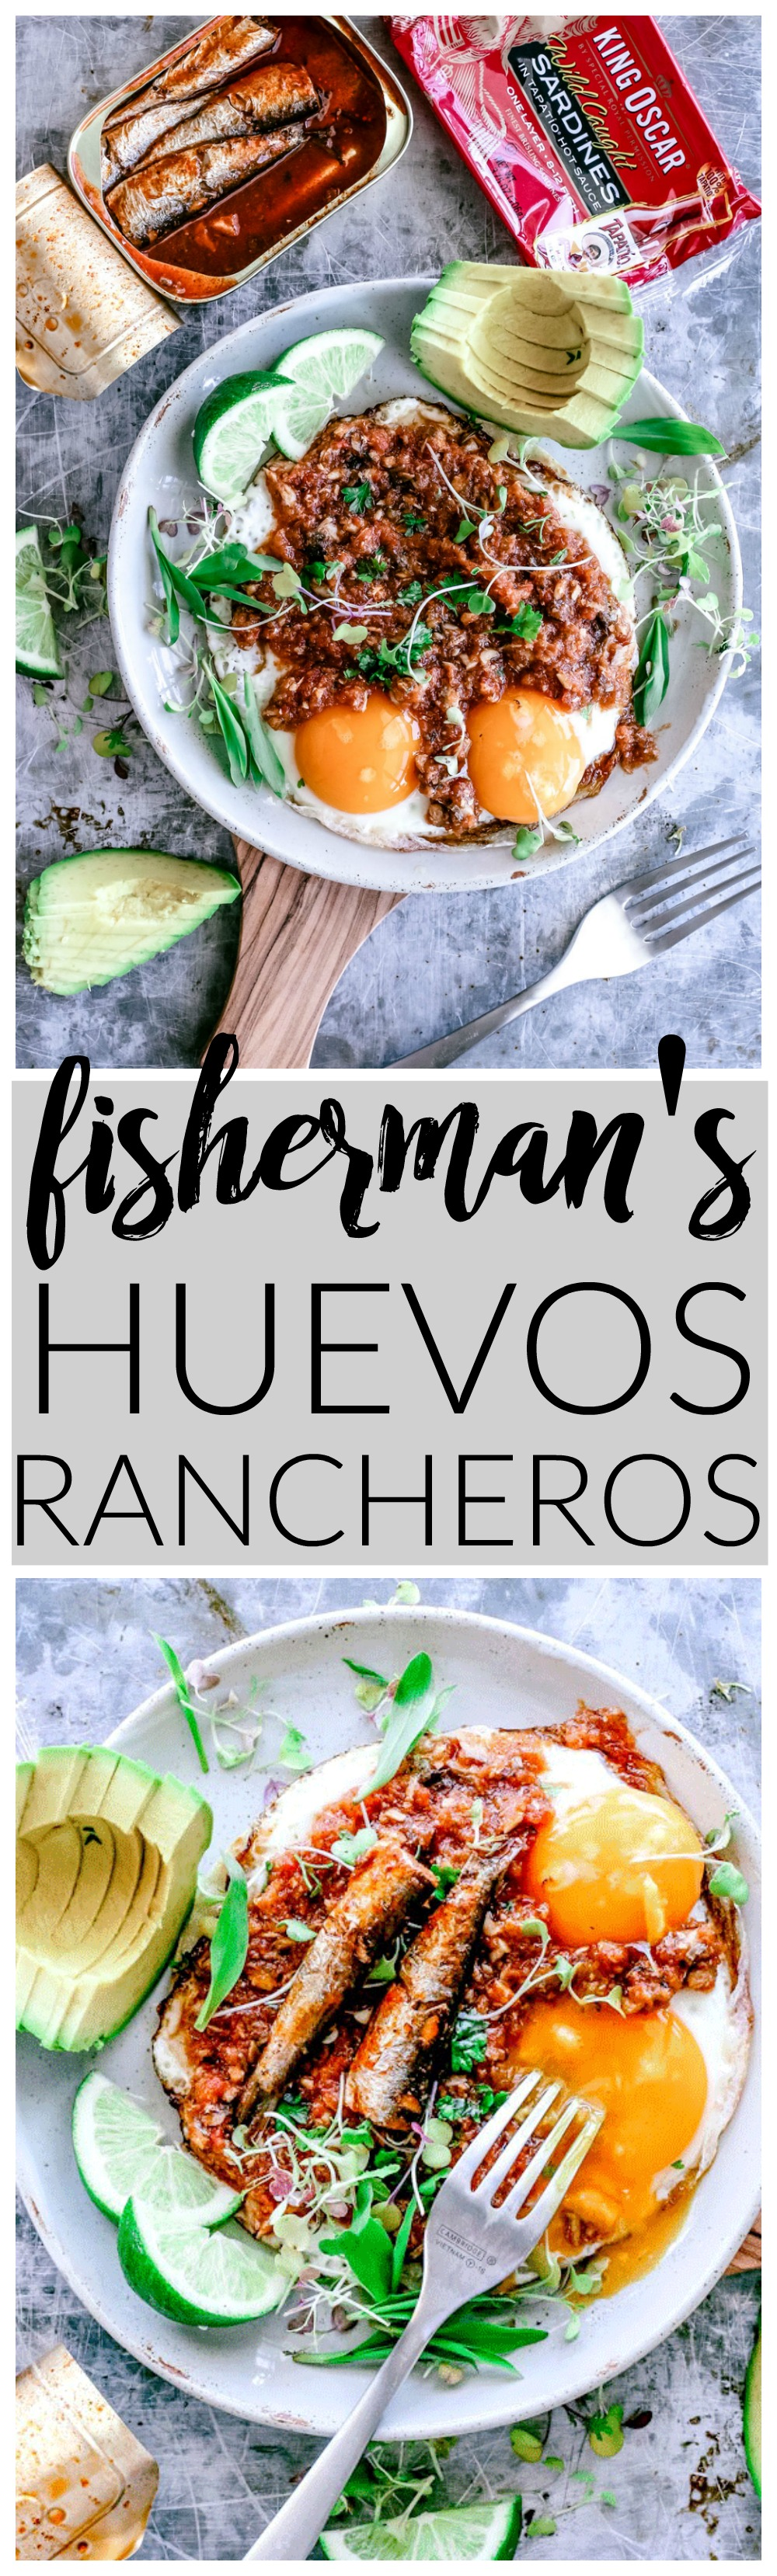 Fisherman's Huevos Rancheros | Killing Thyme